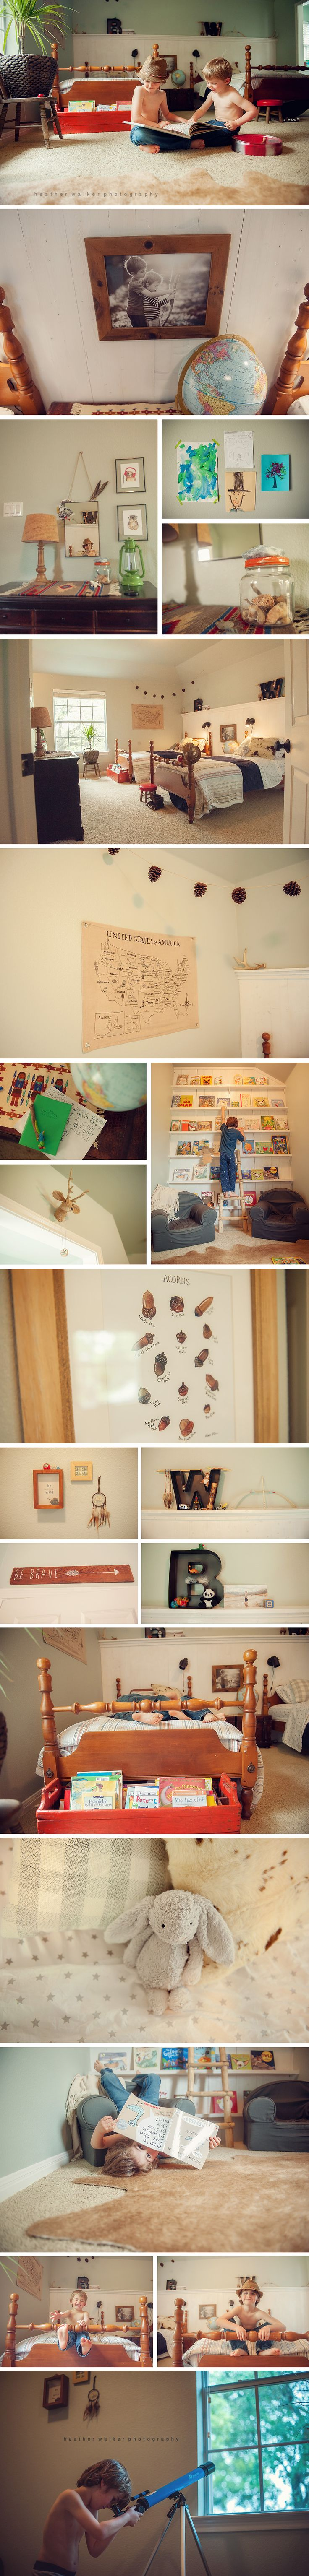 Boys Room Makeover Ideas! Boys room, decor inspiration.